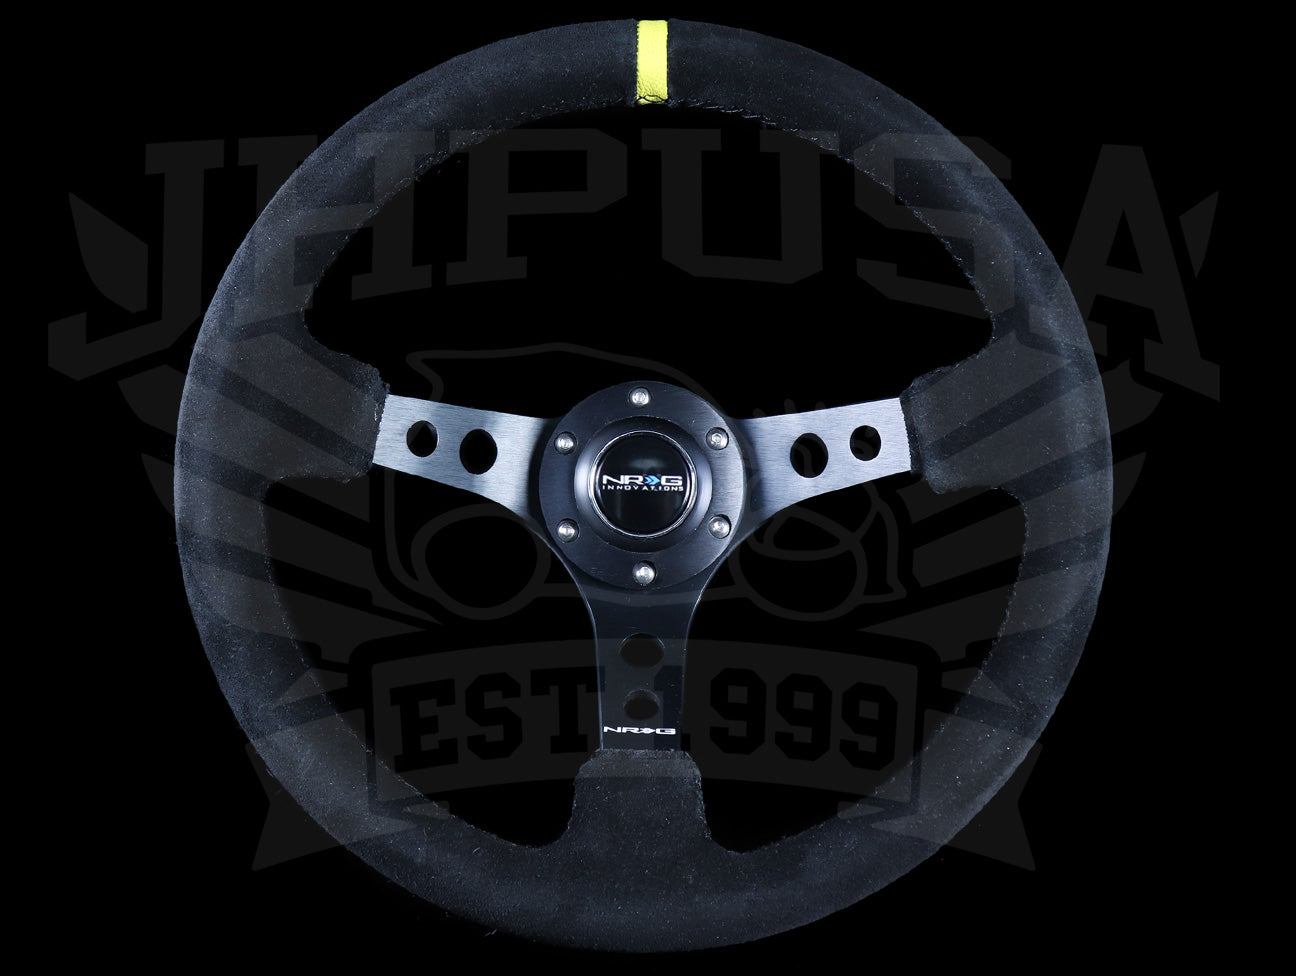 Blue Line Eurobuy 350mm Suede Leather Deep Dish Steering Wheel for Car Racing